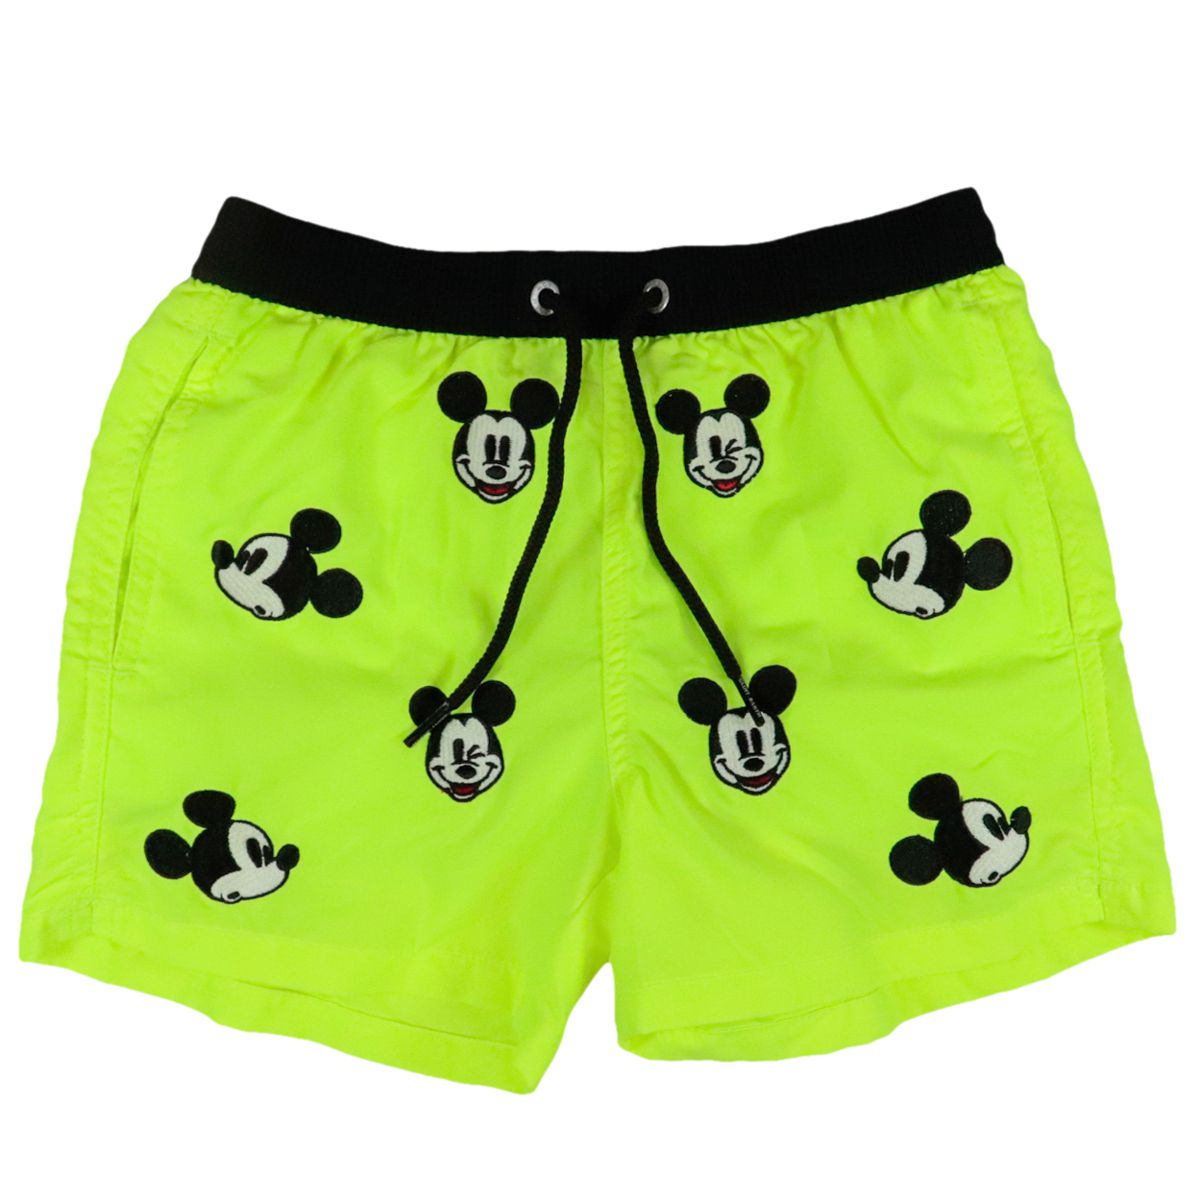 Jean boxer costume with Mickey embroidery Fluo yellow MC2 Saint Barth